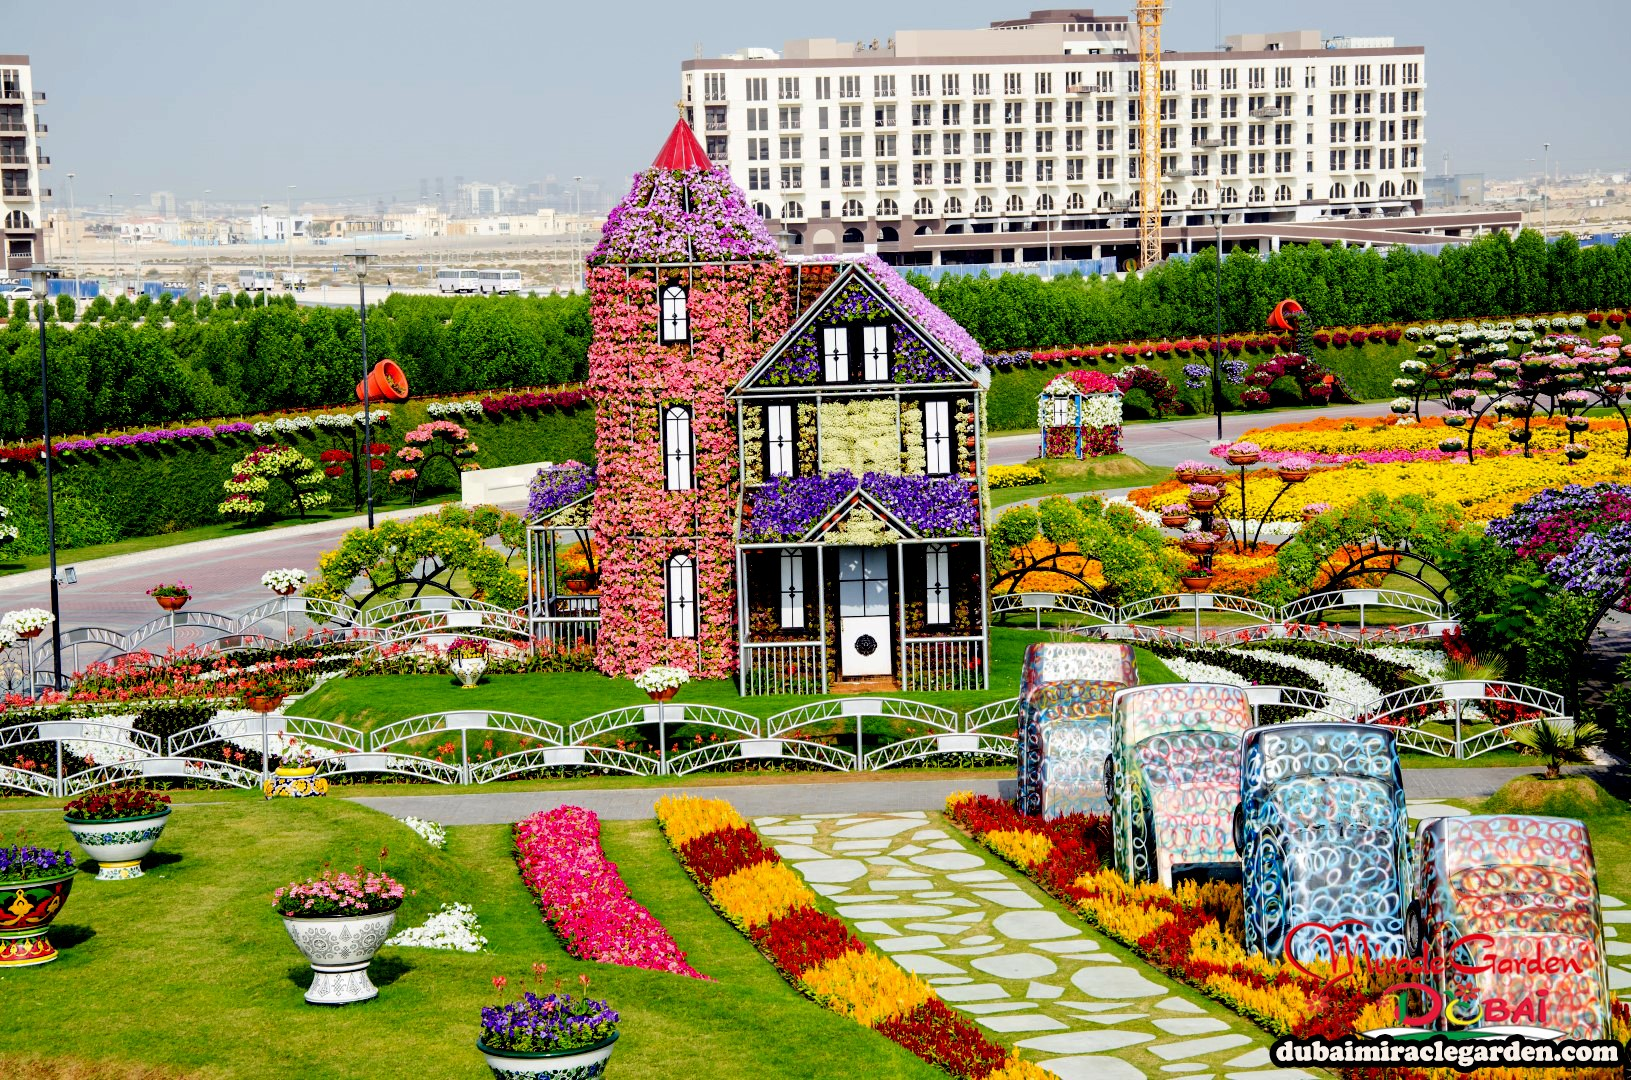 Dubai miracle garden the world 39 s biggest natural flower for Garden pool dubai